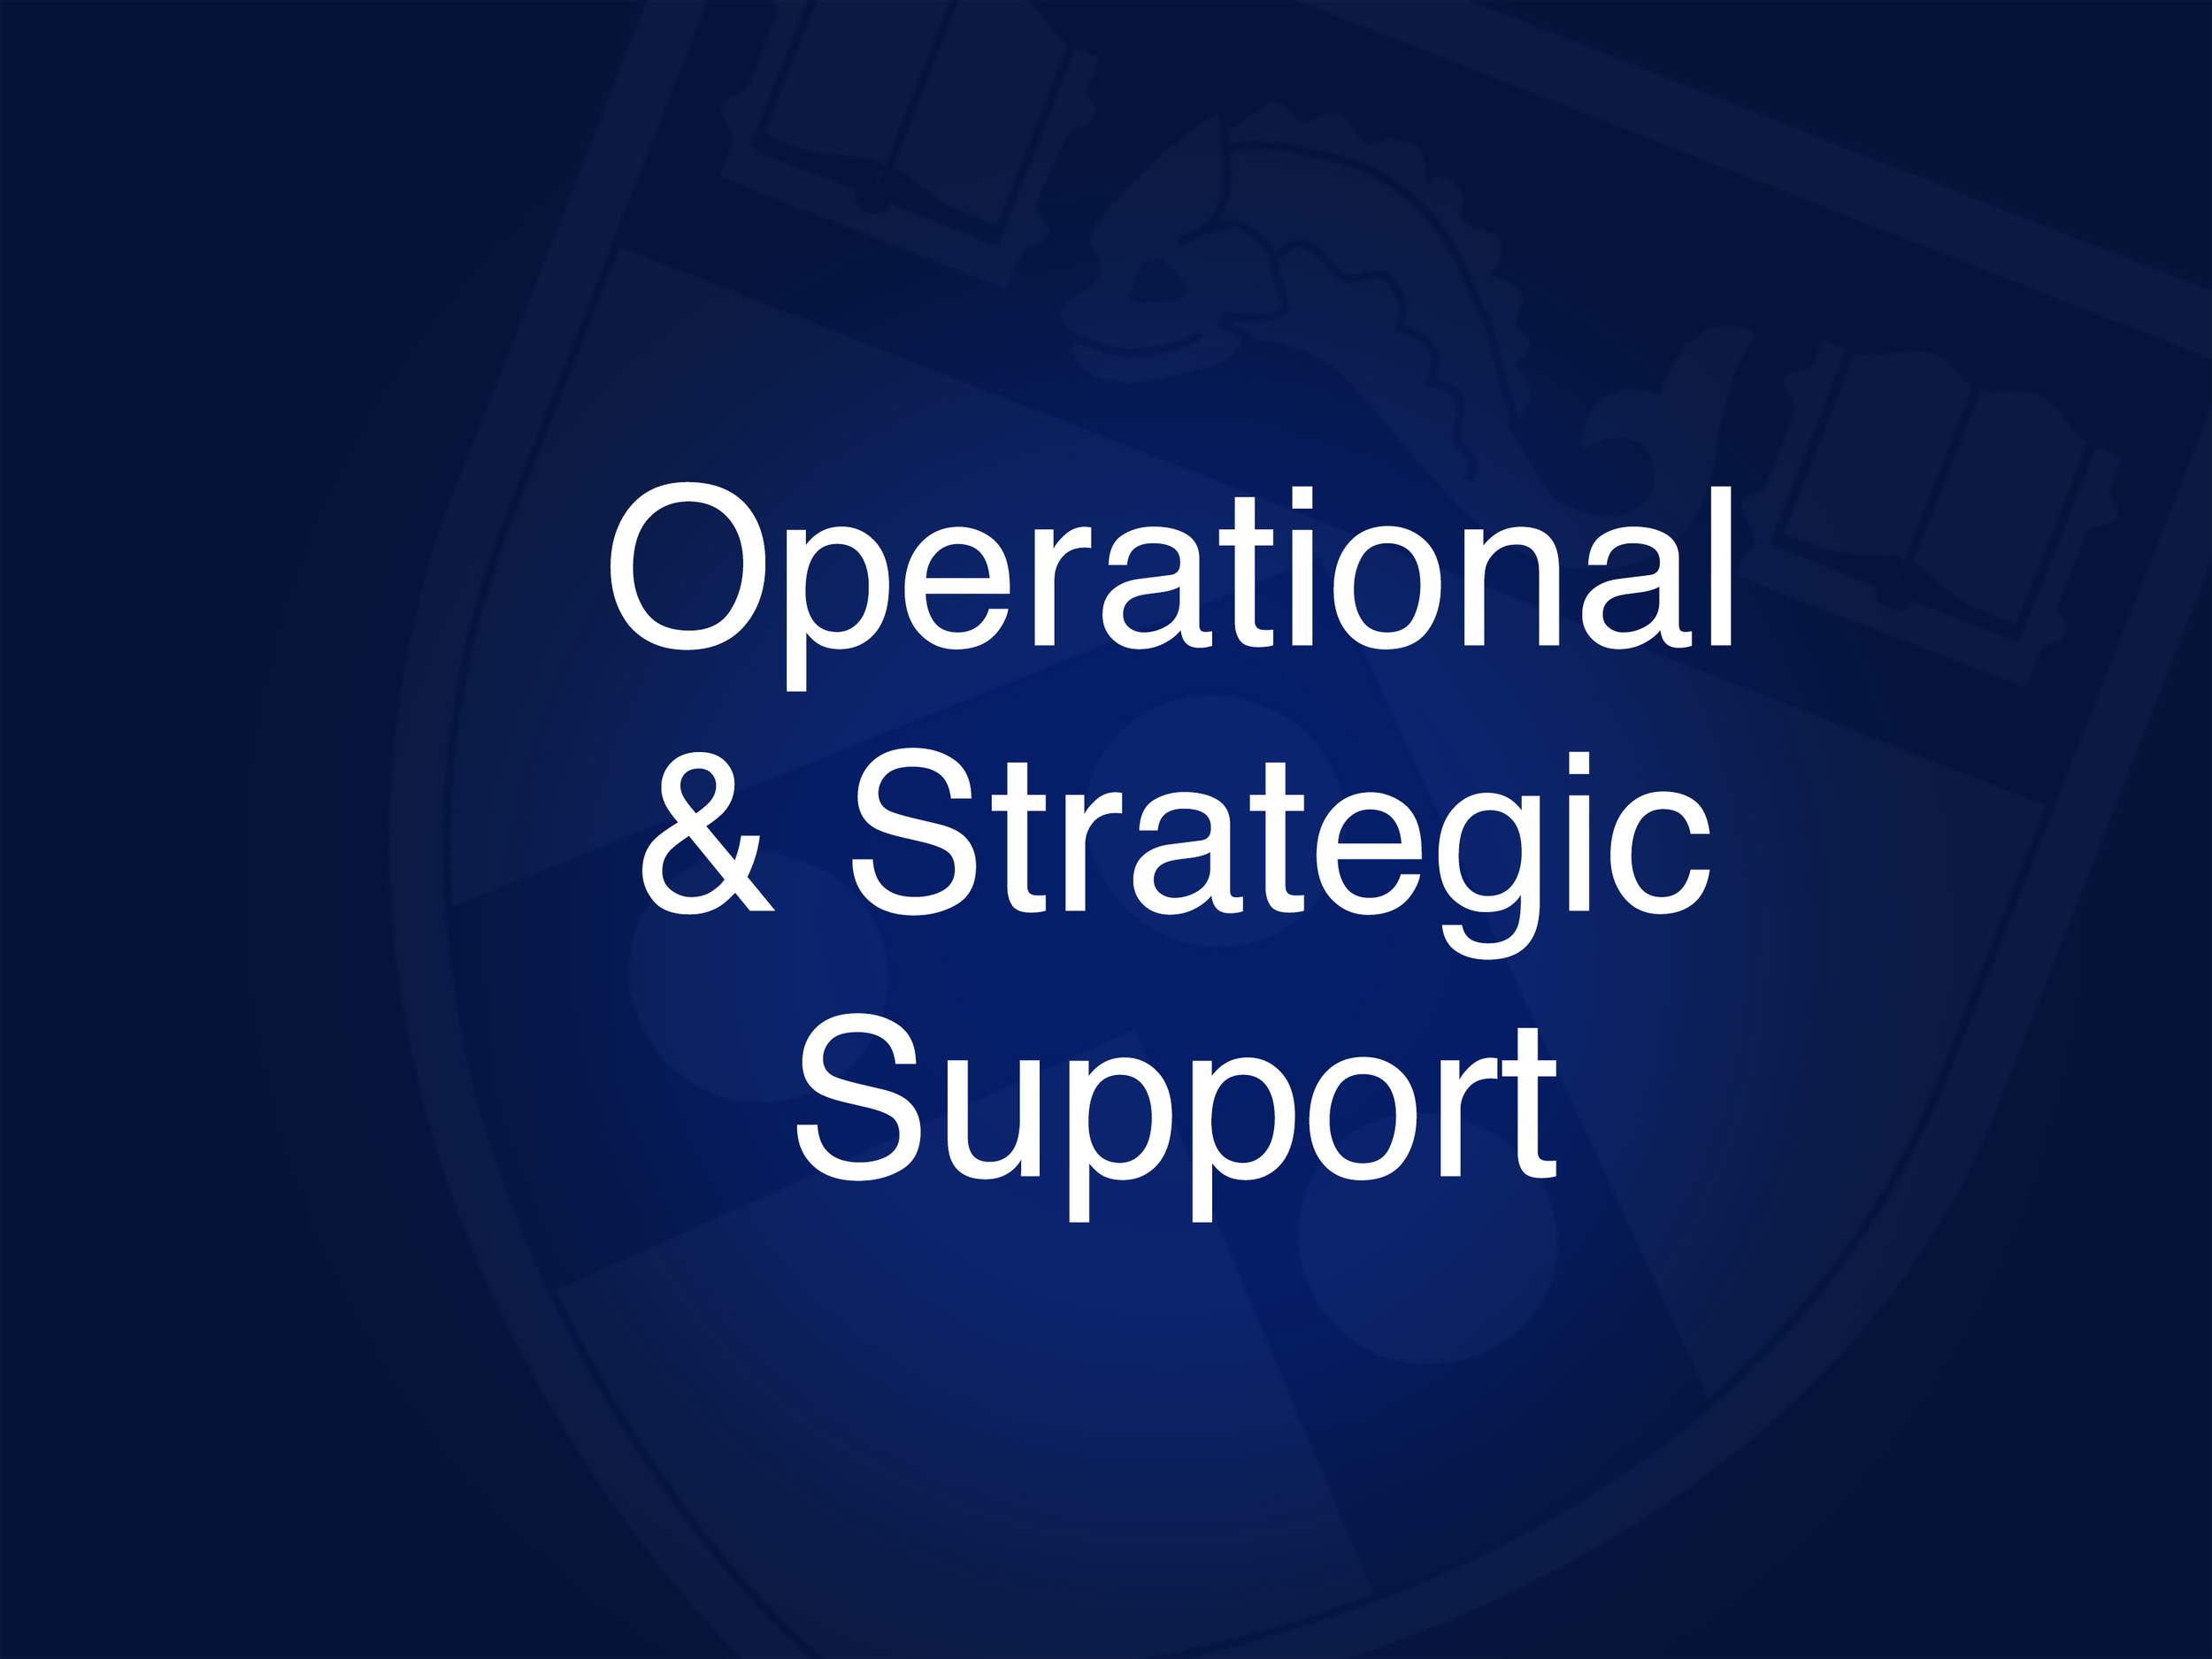 •  Conduct research and analysis to support operational improvements and define strategic direction to increase firm value